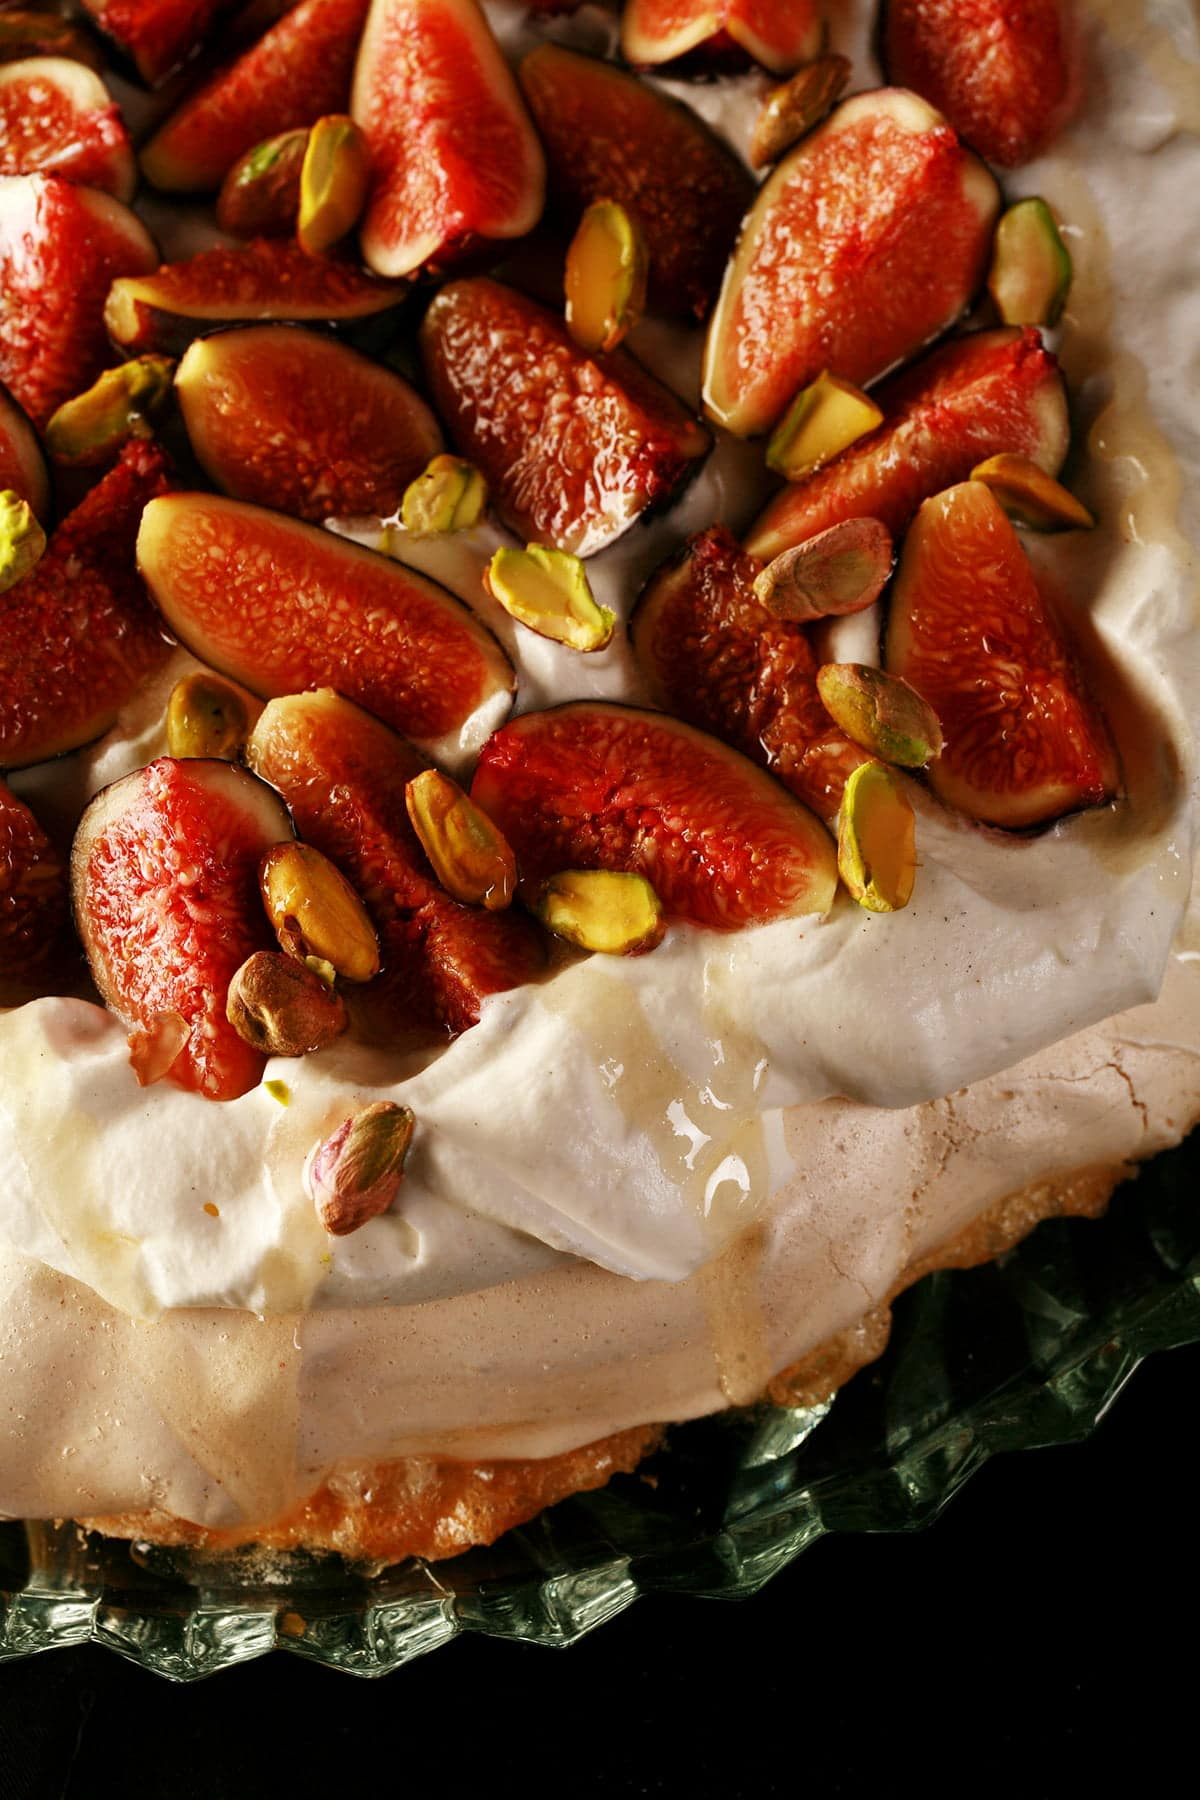 An ivory coloured Pavlova meringue round, piled with whipped cream, sliced figs, and pistachios. A drizzle of honey finishes it off.